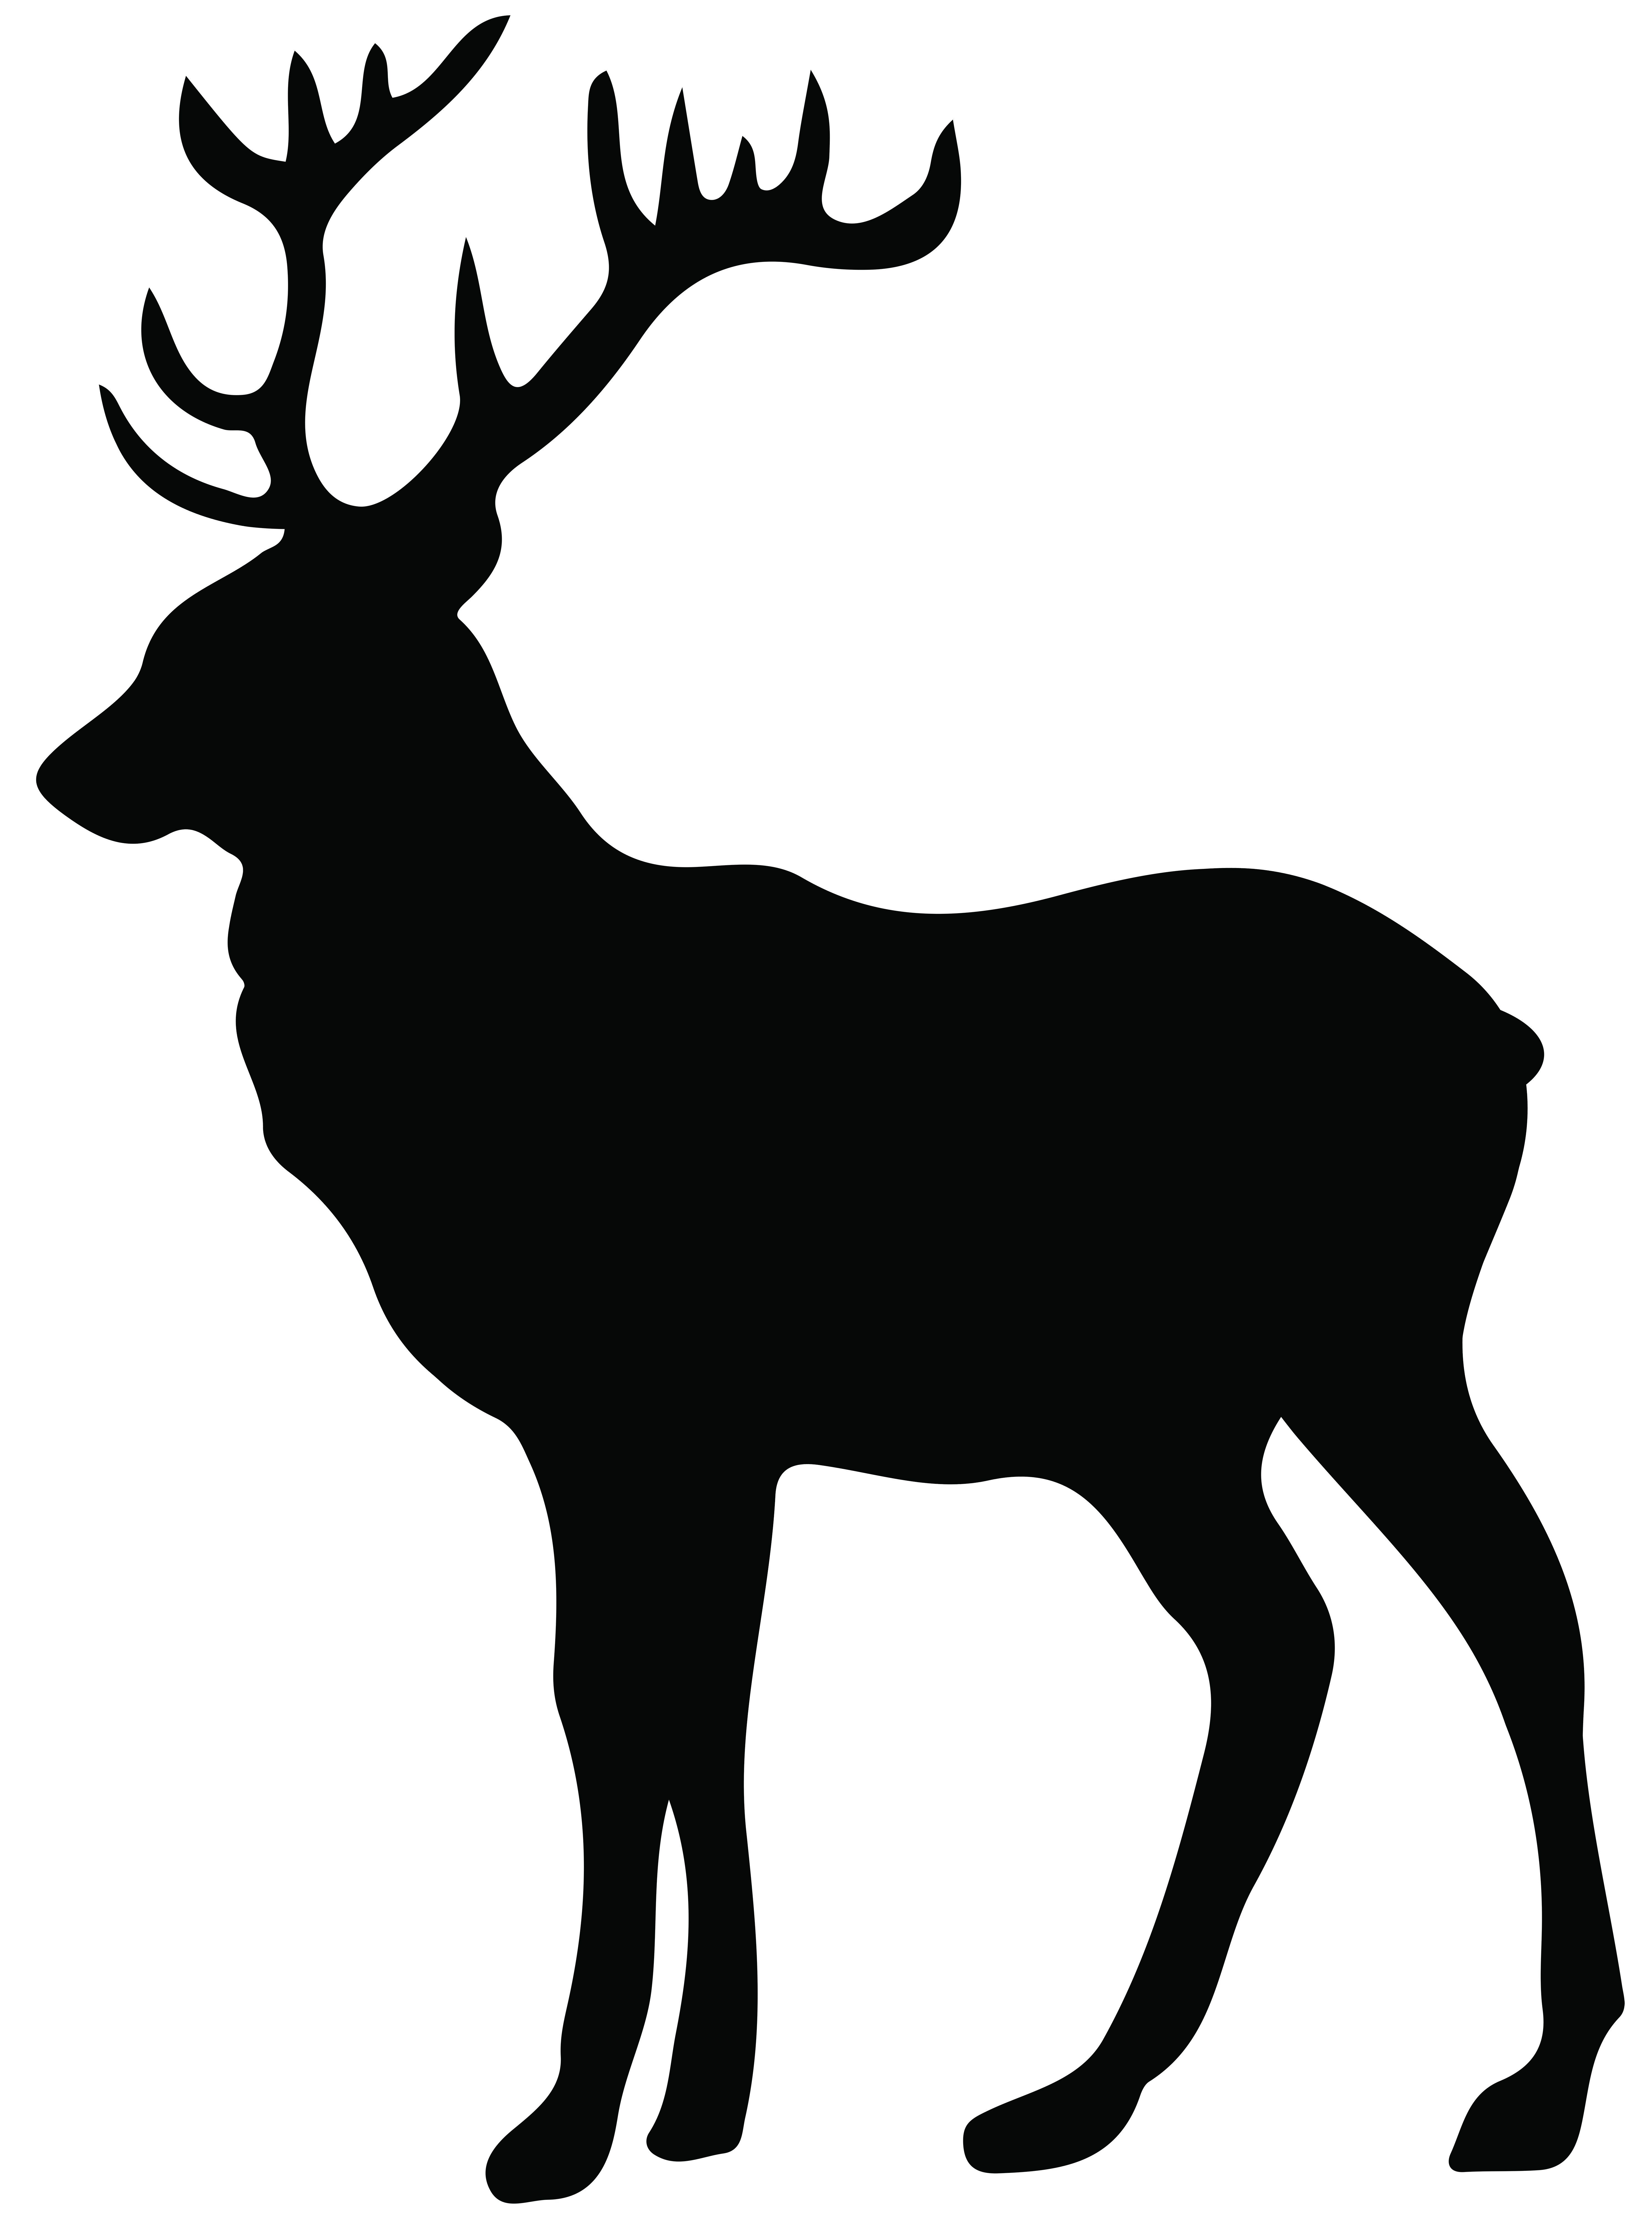 Stag Silhouette Png Transparent Clip Art Image Animal Silhouette Silhouette Art Deer Silhouette Printable